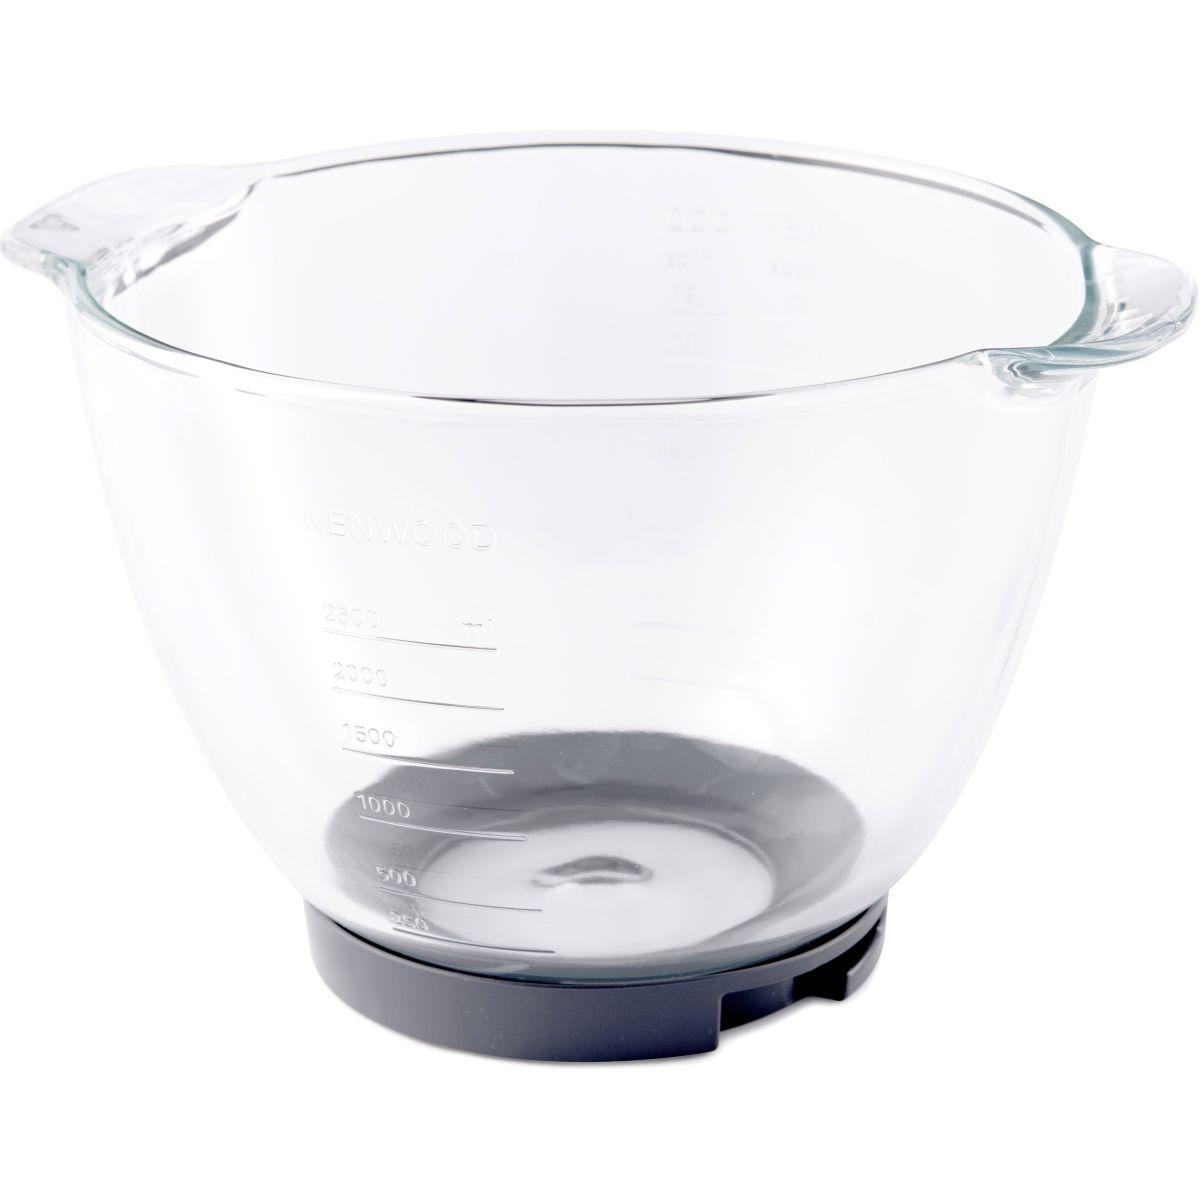 Accessoire kenwood kat550gl bol verre th (photo)